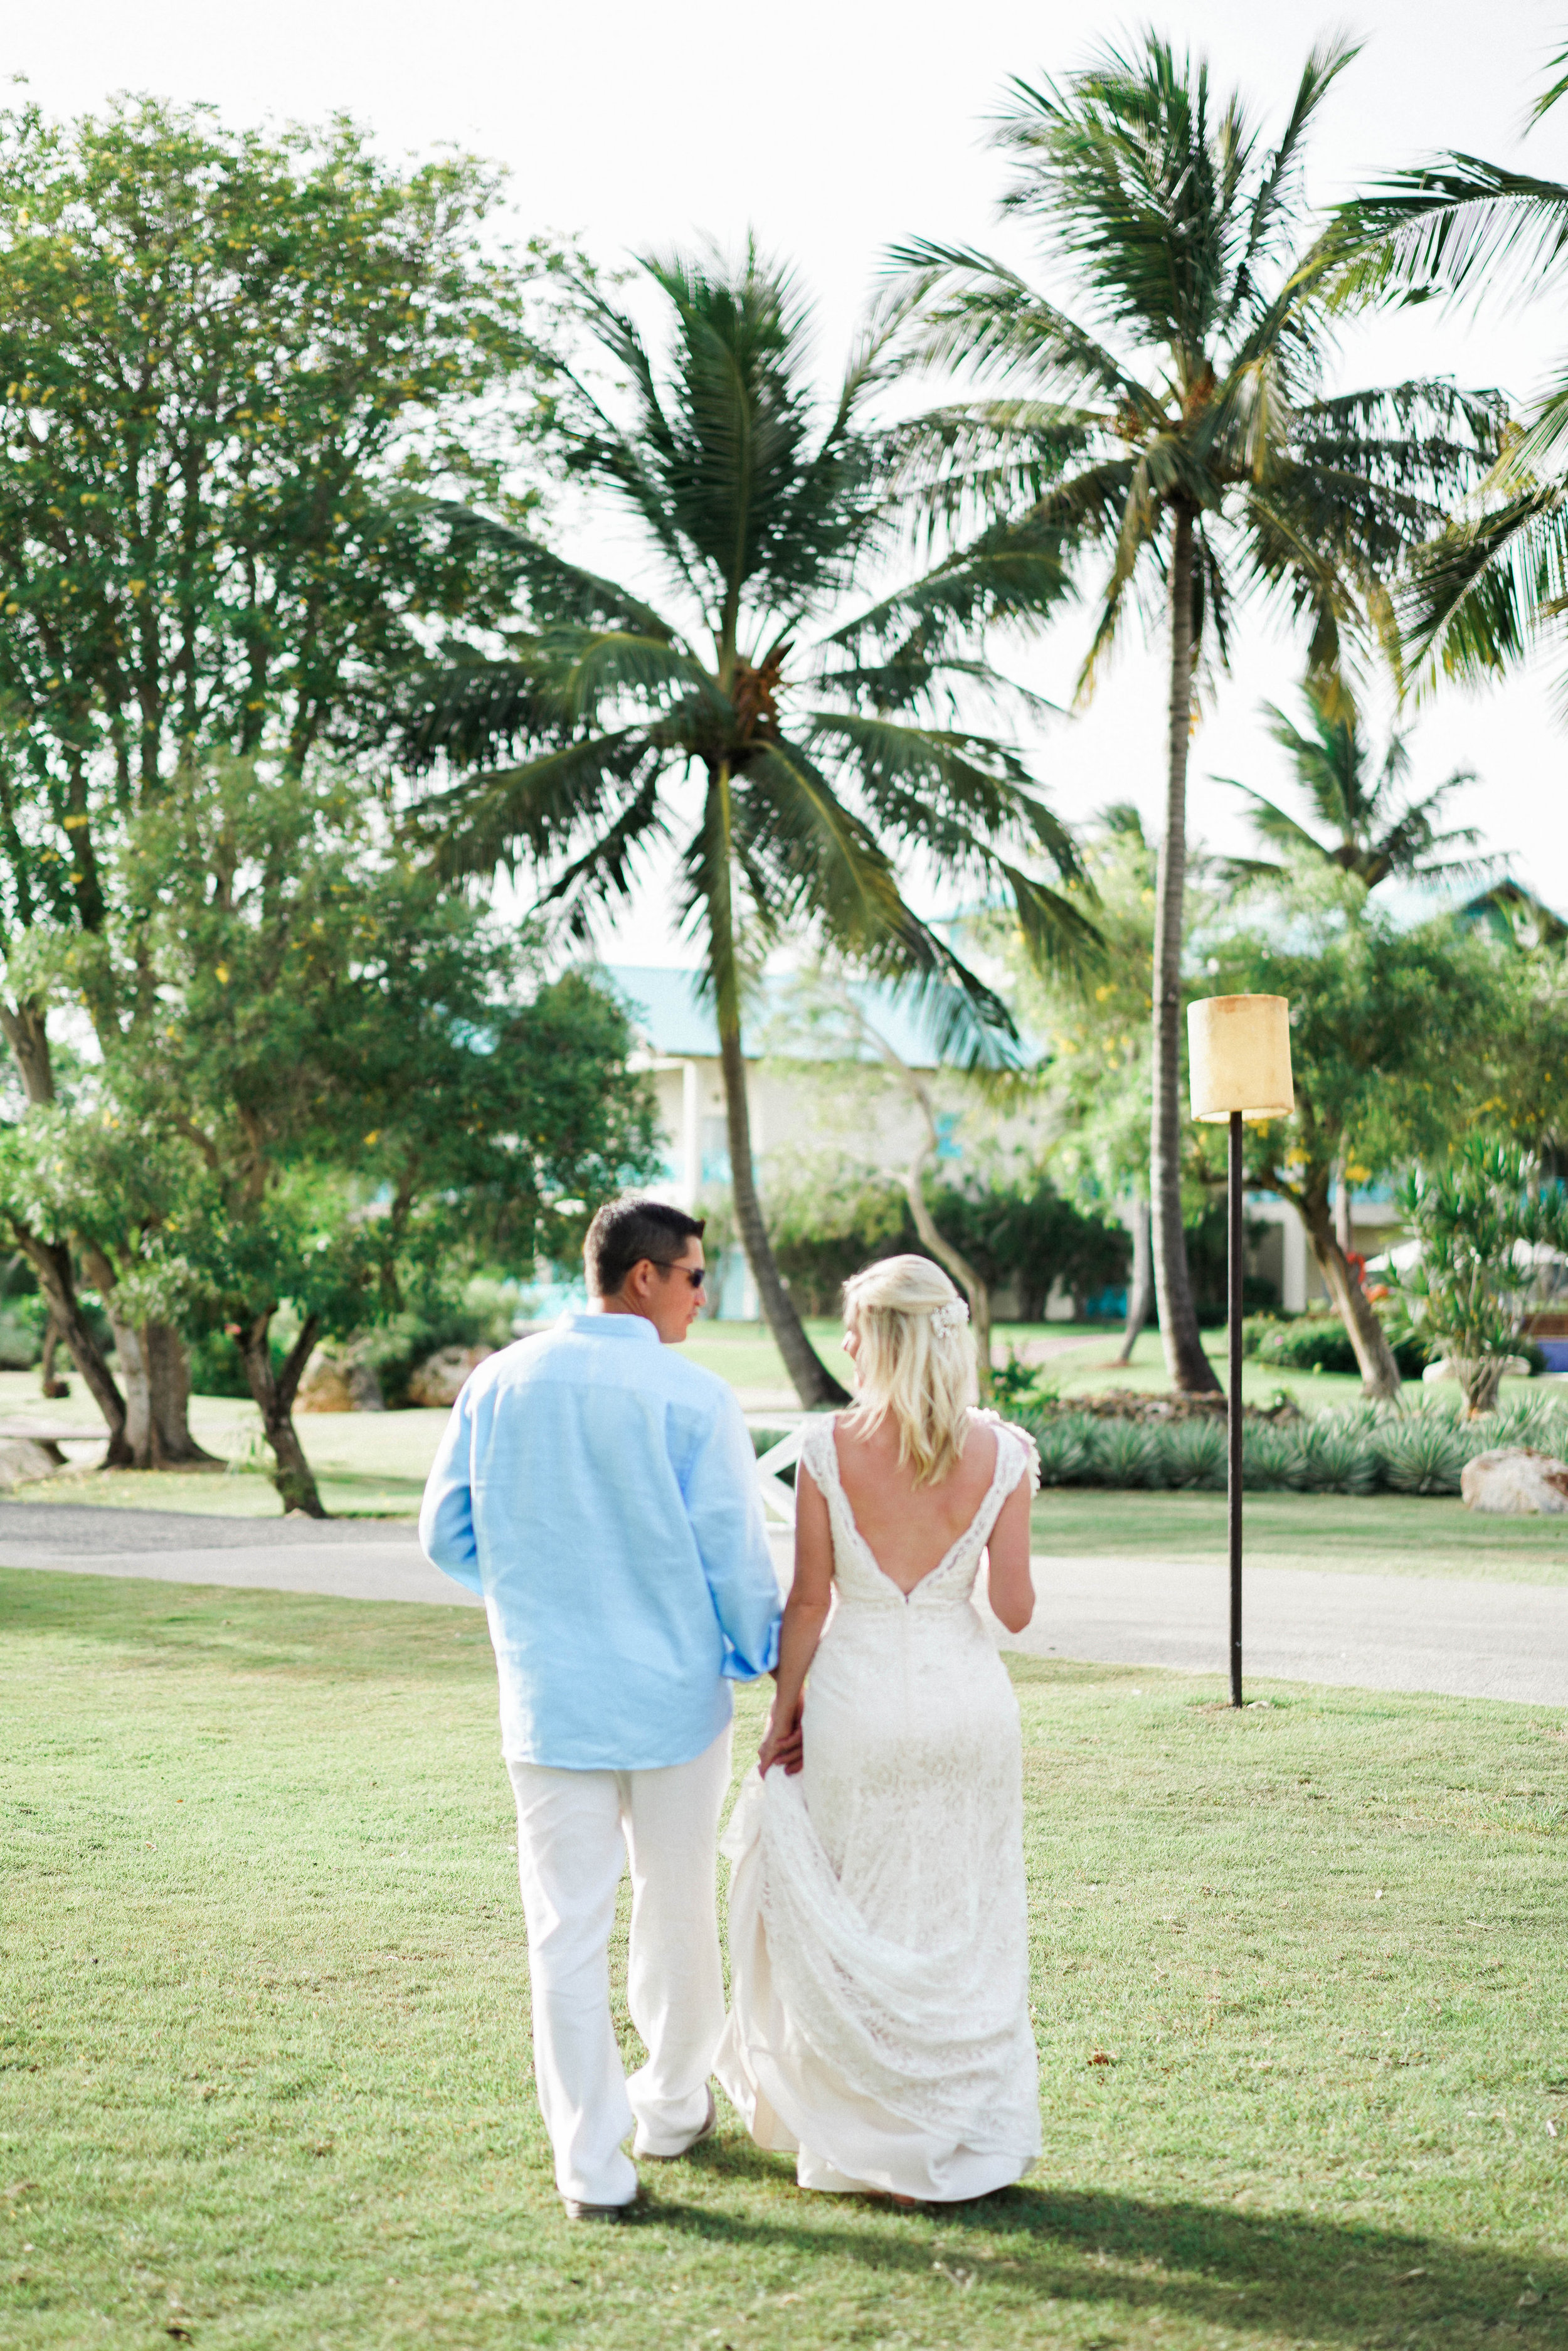 La Romana, Dominican Republic Destination Wedding. Beautiful beach wedding by a Texas destination wedding photographer.